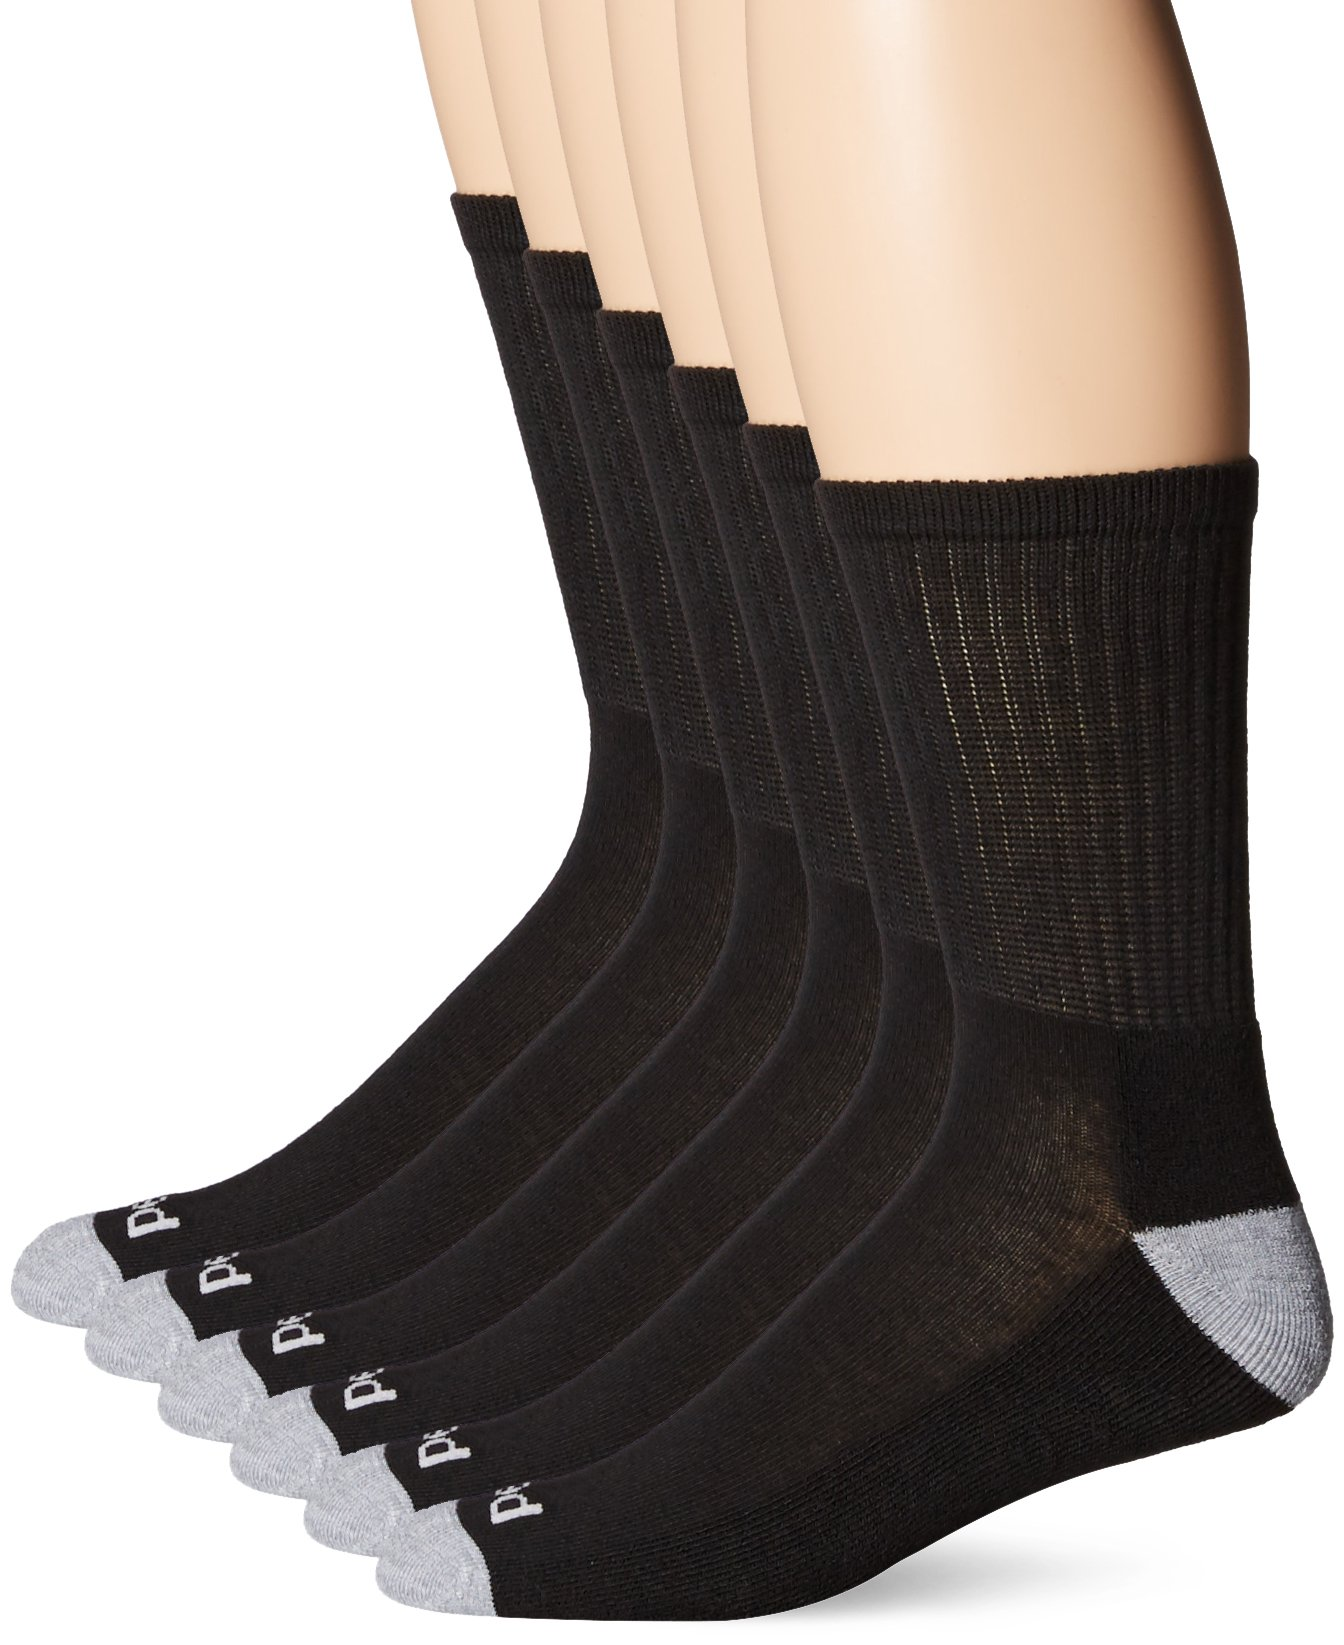 PEDS Men's 6 Pack Cushion Crew Socks with Coolmax, Black/Light Grey Heather, 6-12.5